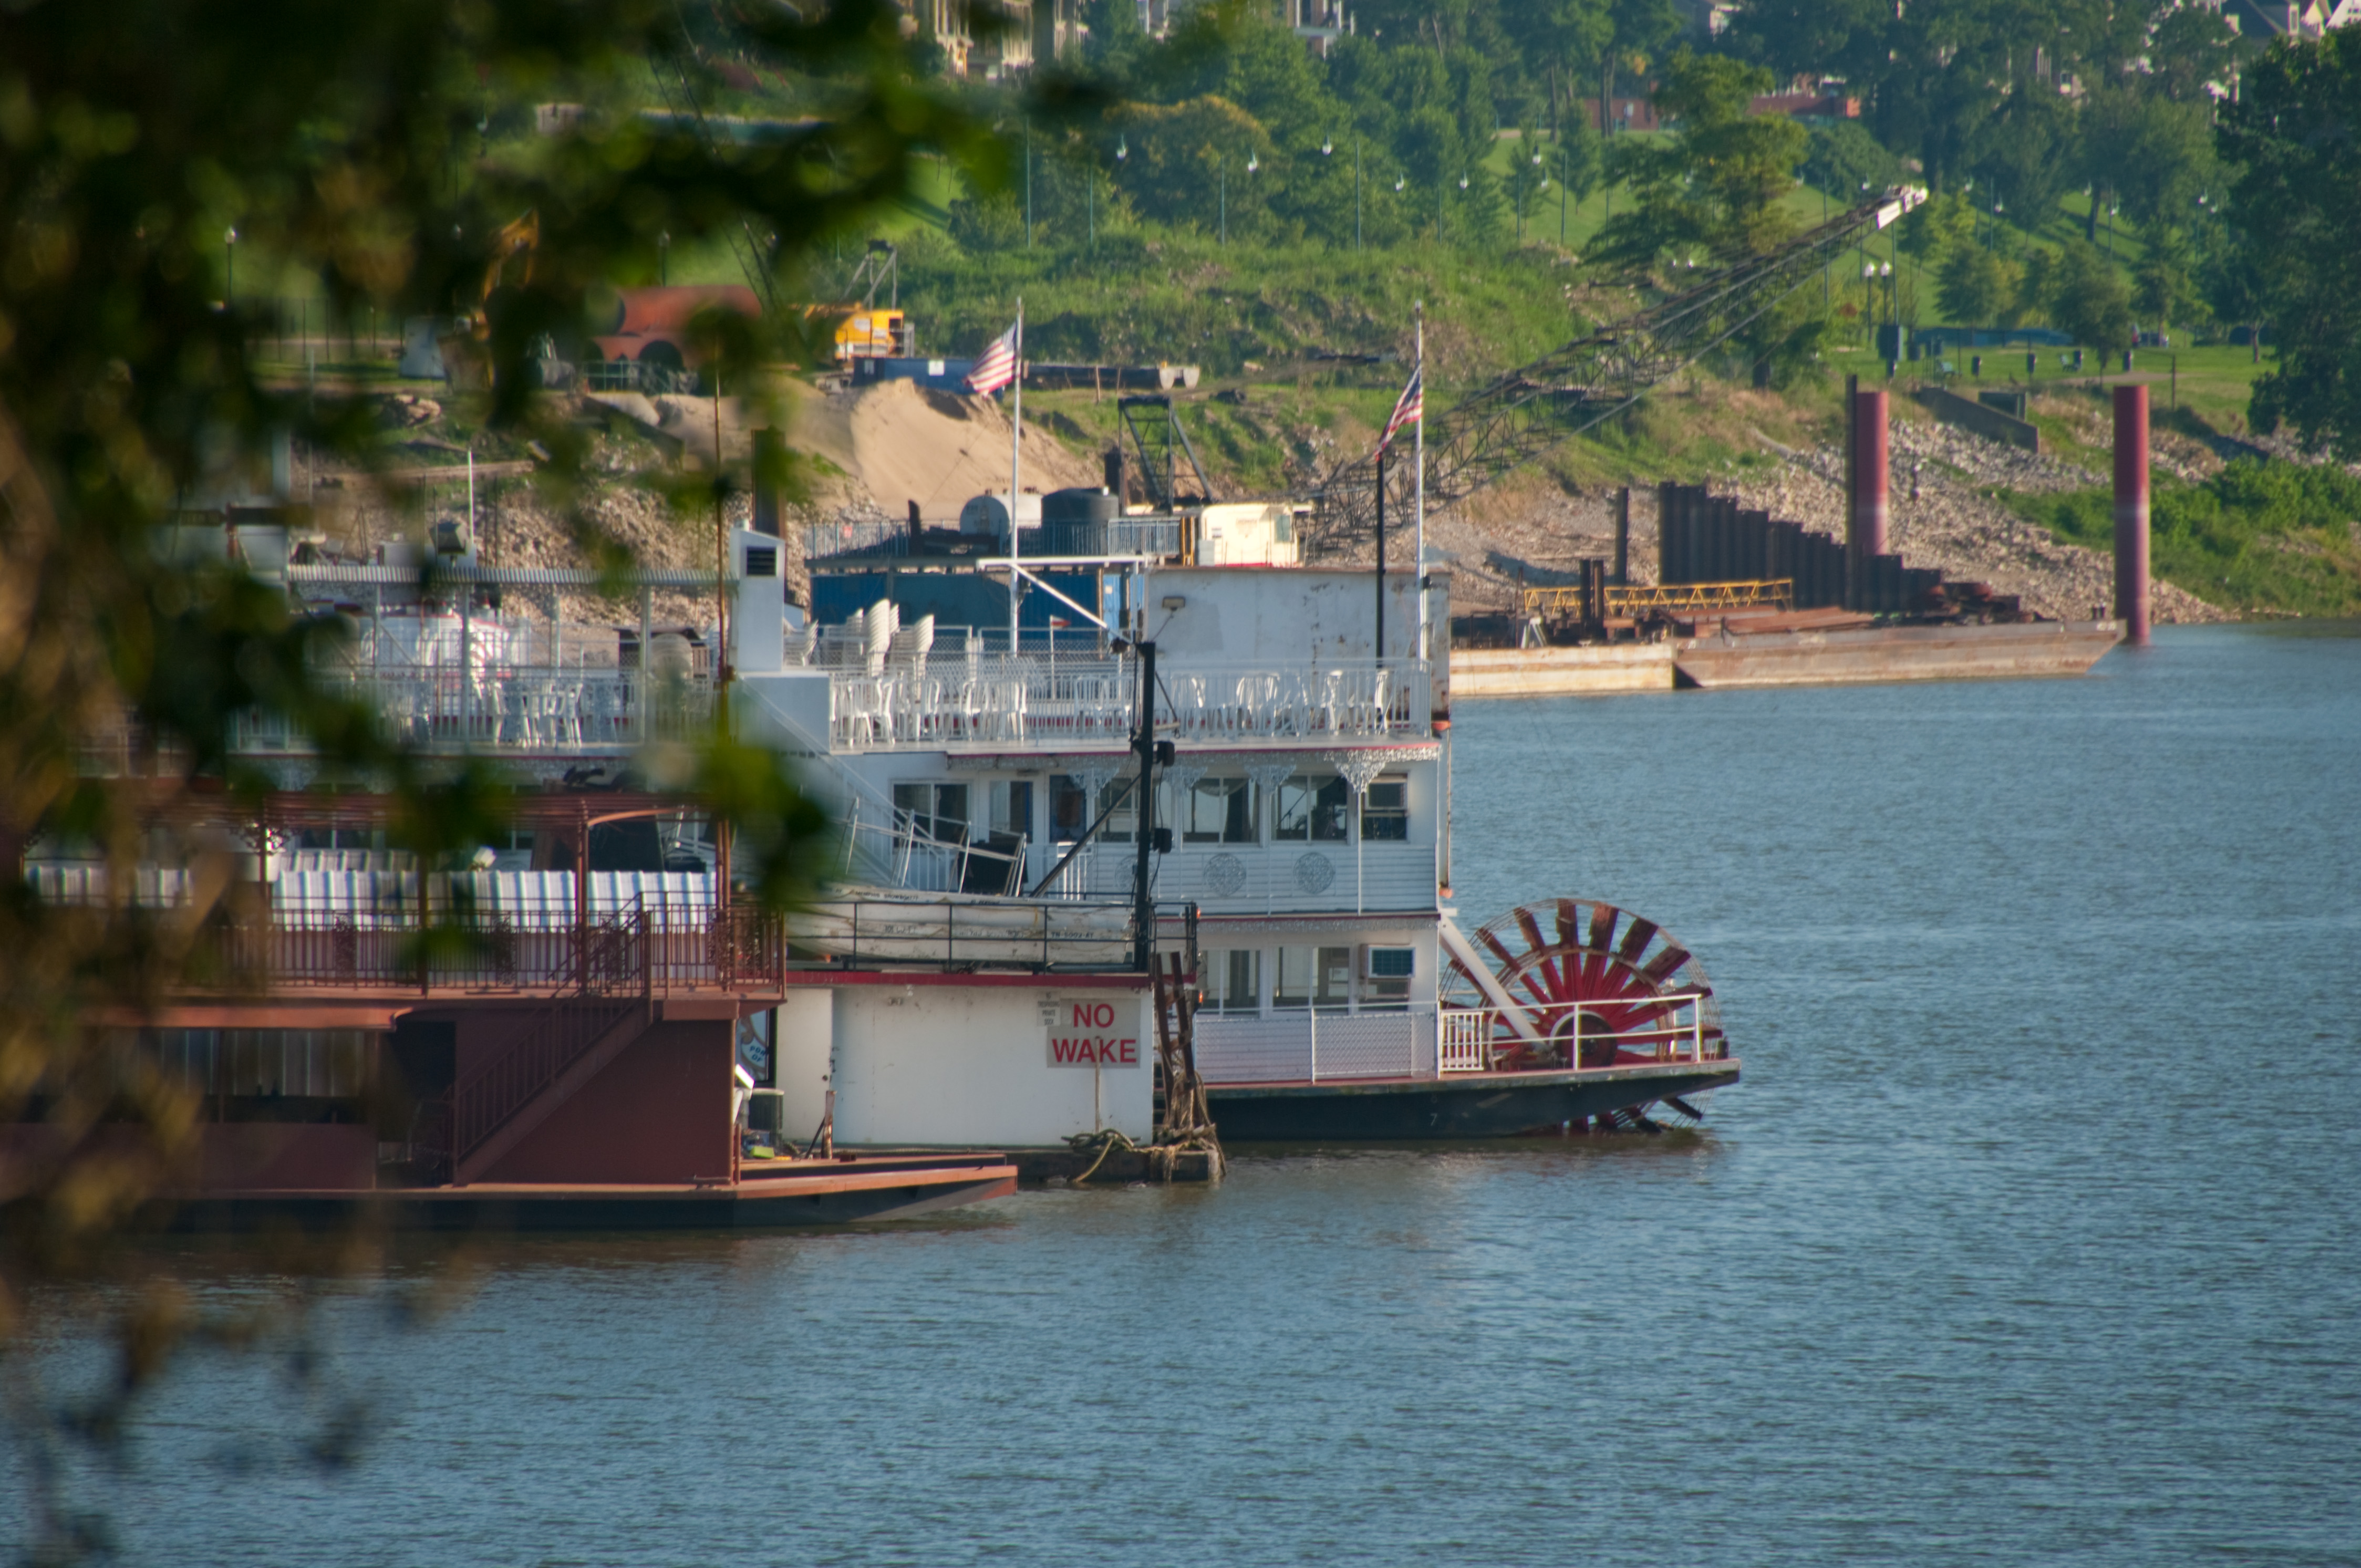 Road Trip: Downtown Memphis, Boat, Downtown, Outdoor, River, HQ Photo